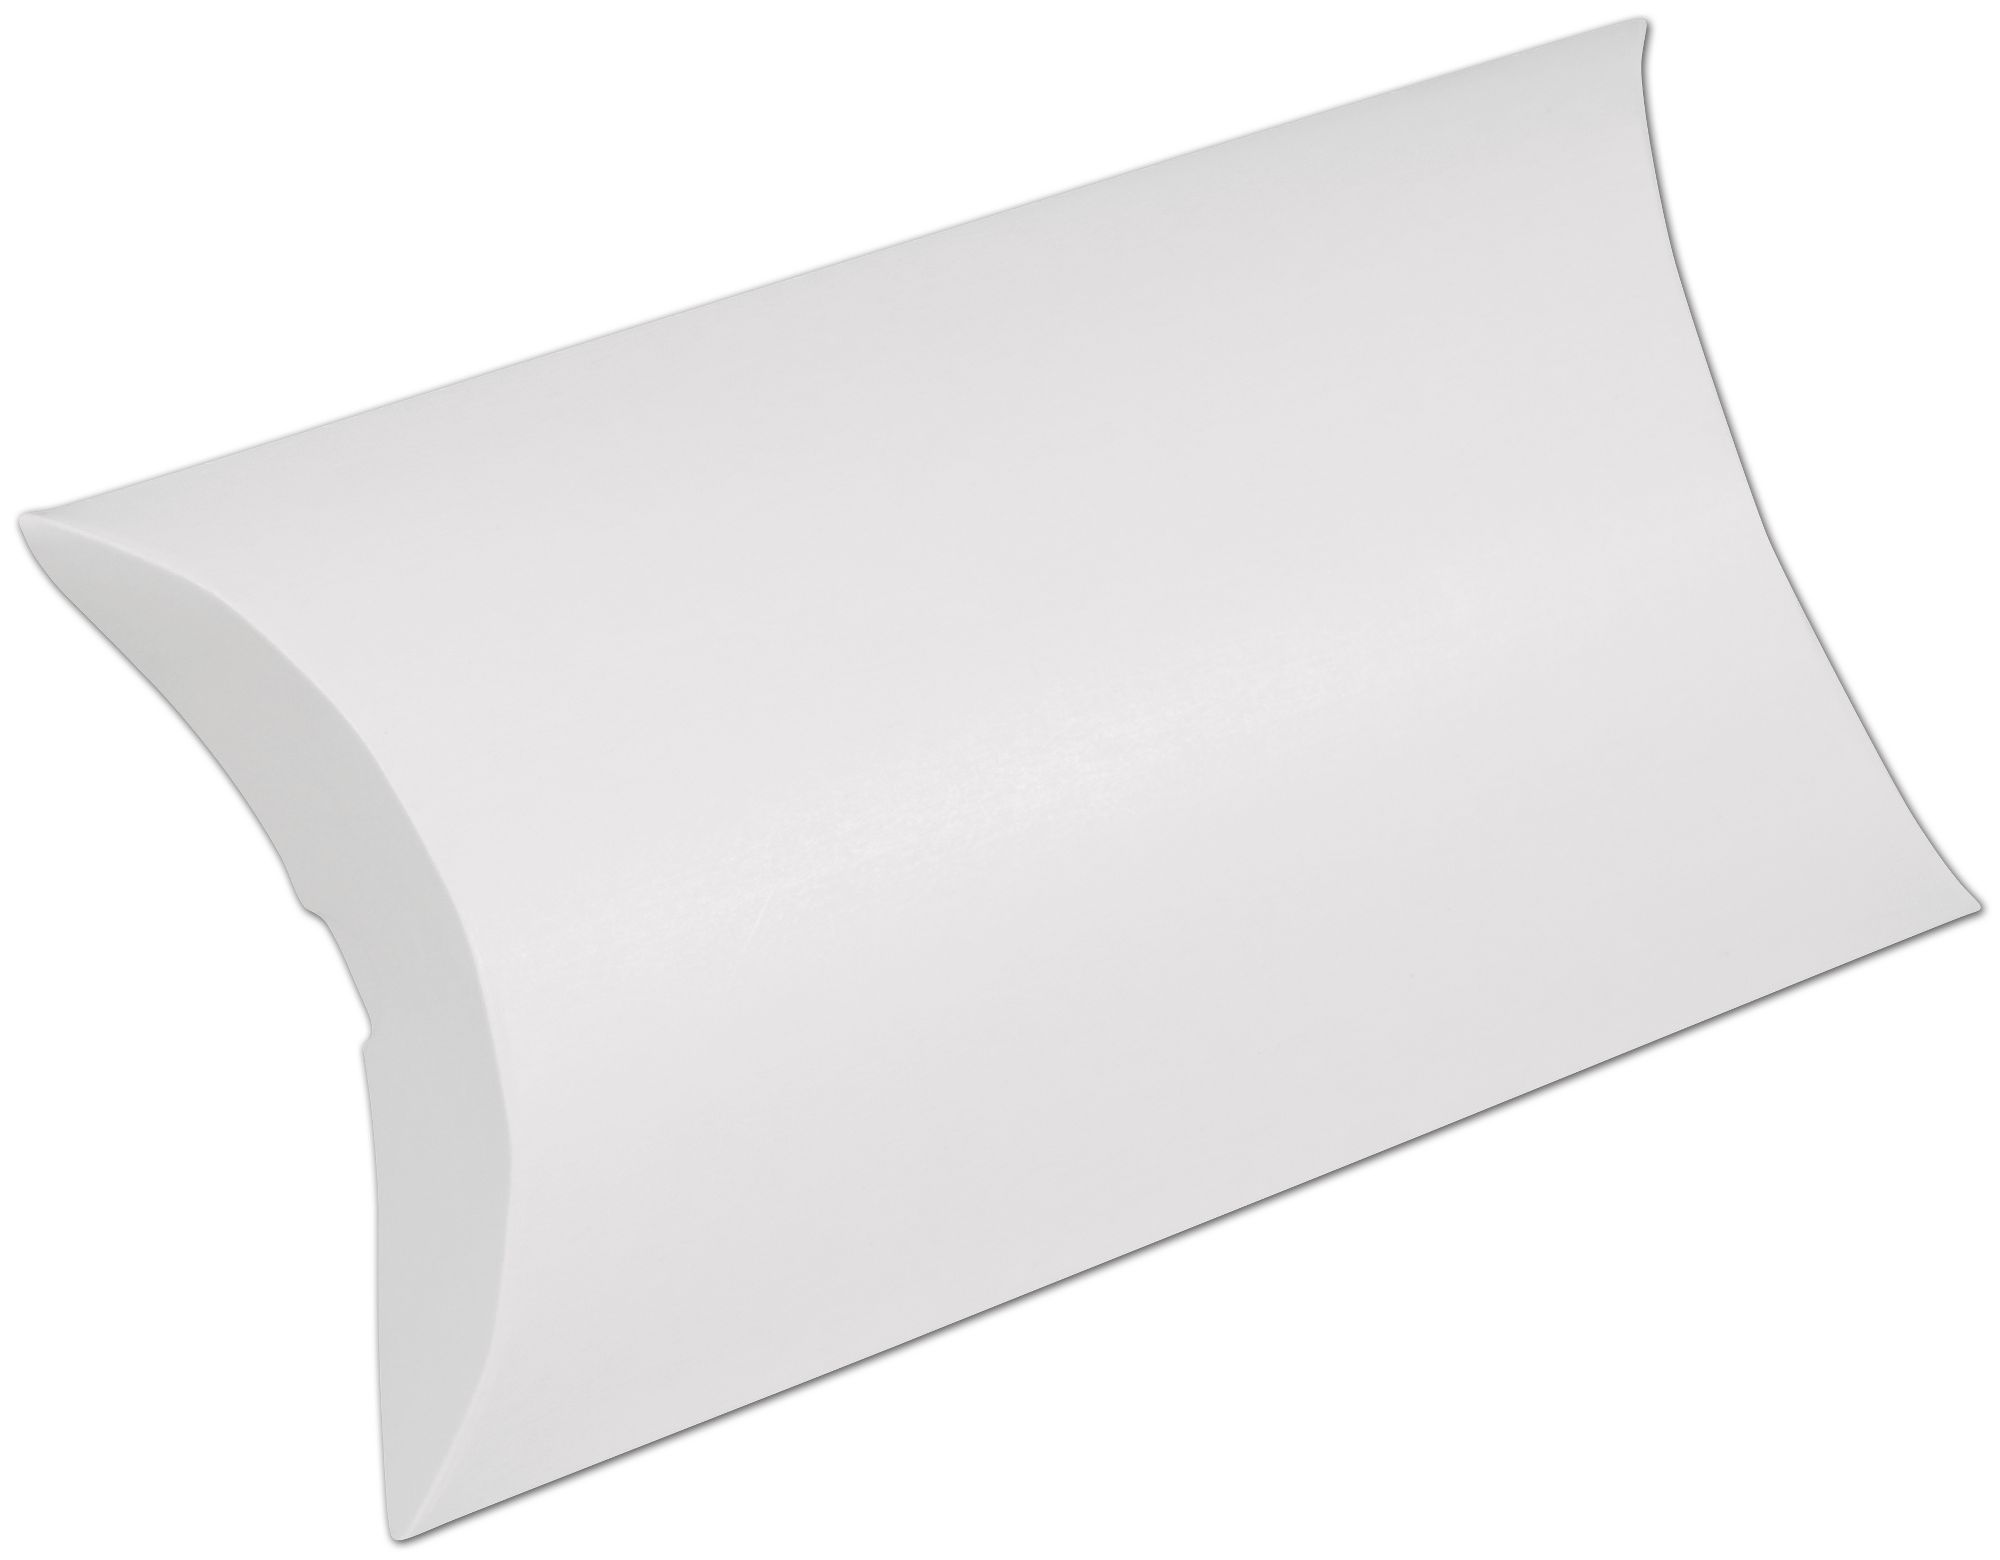 "White Pillow Boxes, 7 x 5 1/2 x 2"" (250 Boxes) - BOWS-255-070502-9"